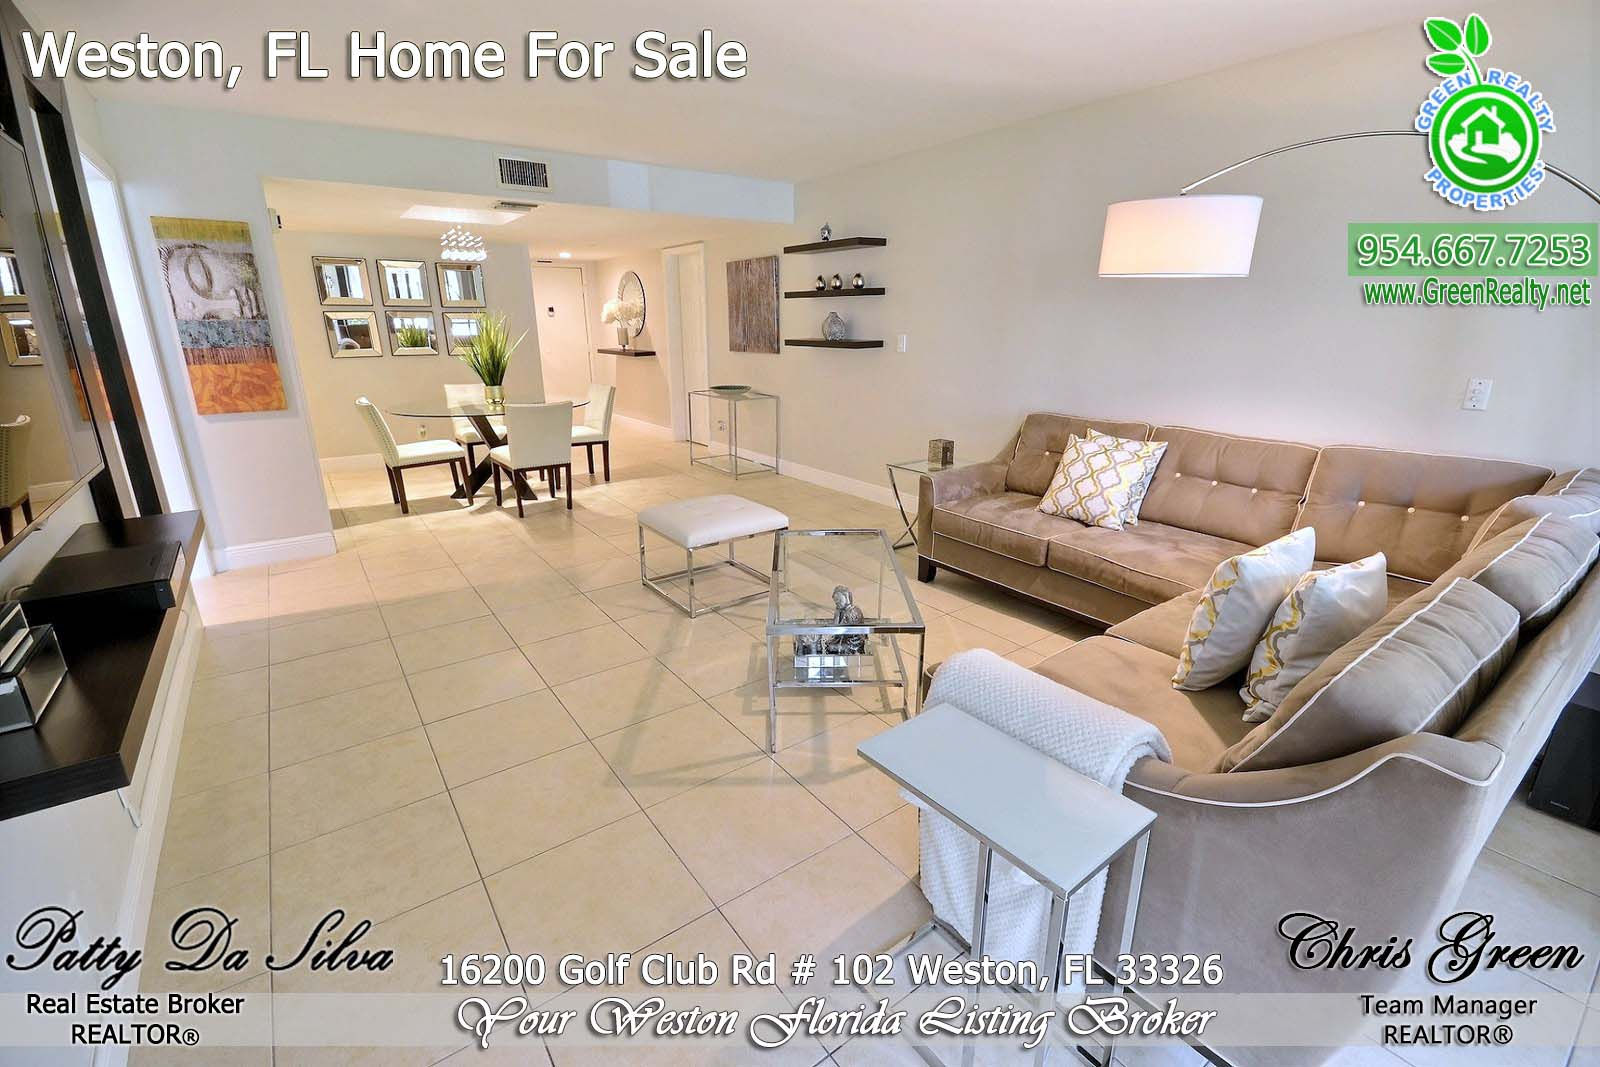 7 16200 Golf Club Rd, Unit 102, Weston FL 33326 (8)